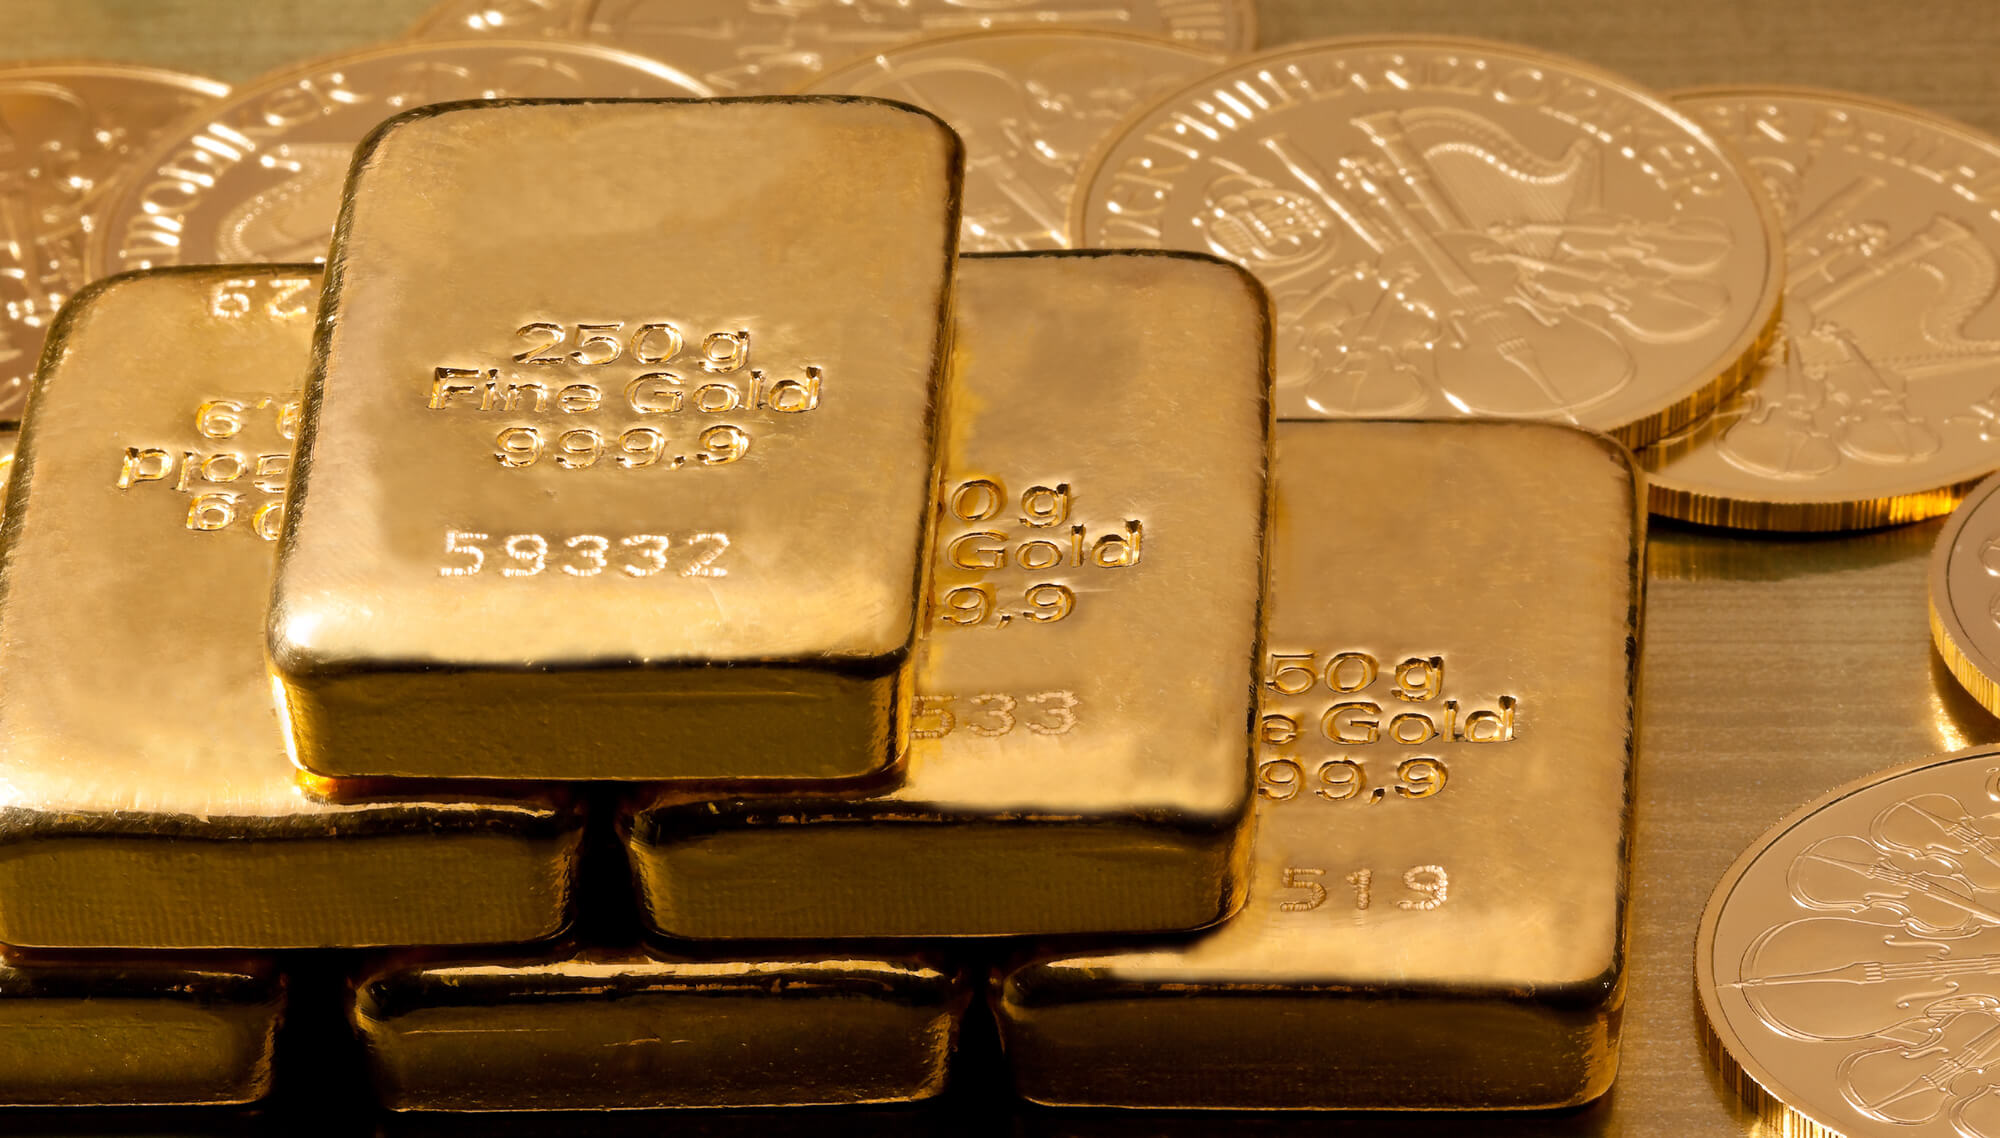 Where to find Gold Bullion West Palm Beach?